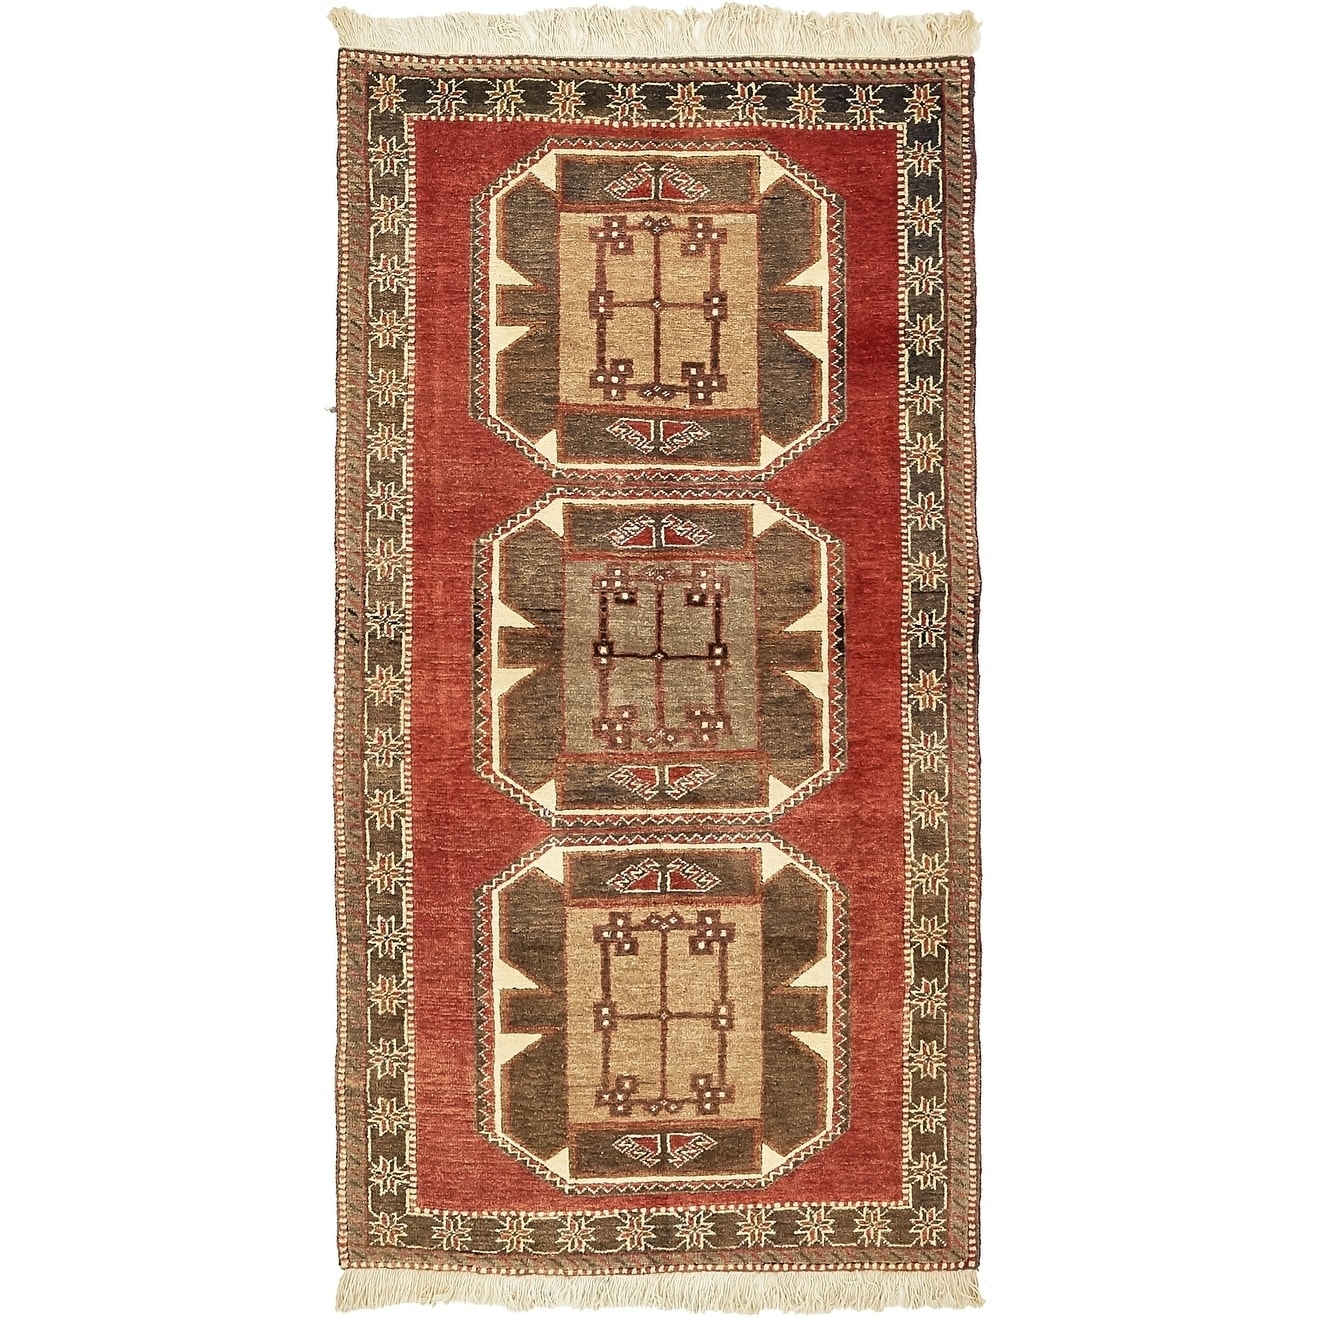 Hand Knotted Kars Wool Area Rug - 3' 3 x 6' 7 (Red - 3' 3 x 6' 7)